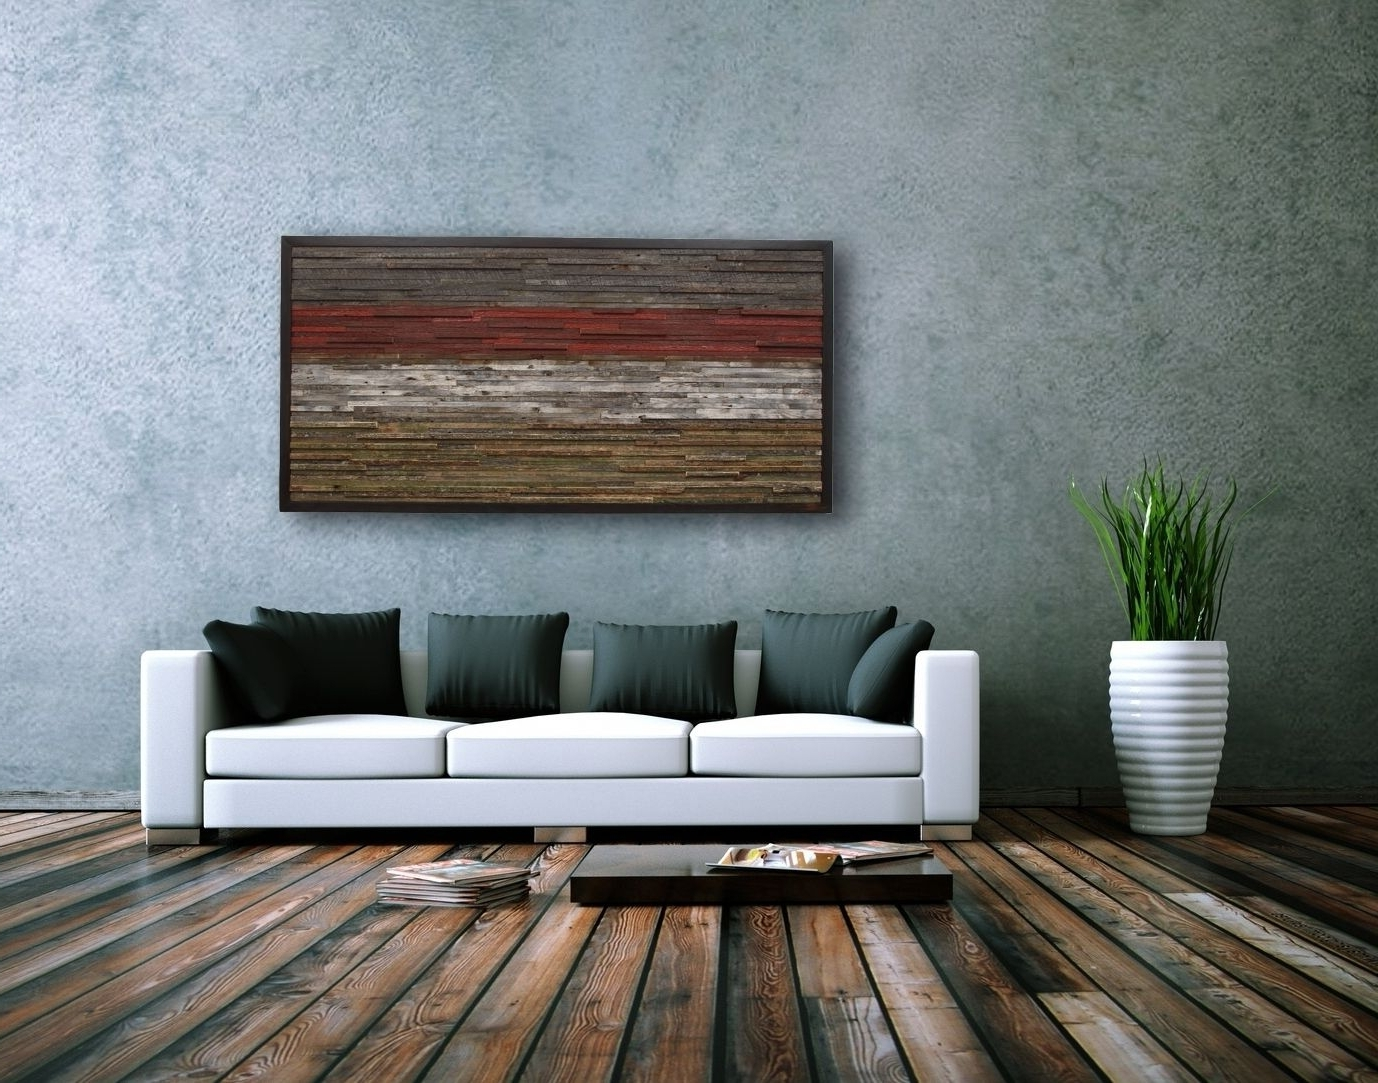 Latest Astonishing Strikingly Ideas Large Rustic Wall Art With Metal Intended For Large Rustic Wall Art (View 14 of 15)